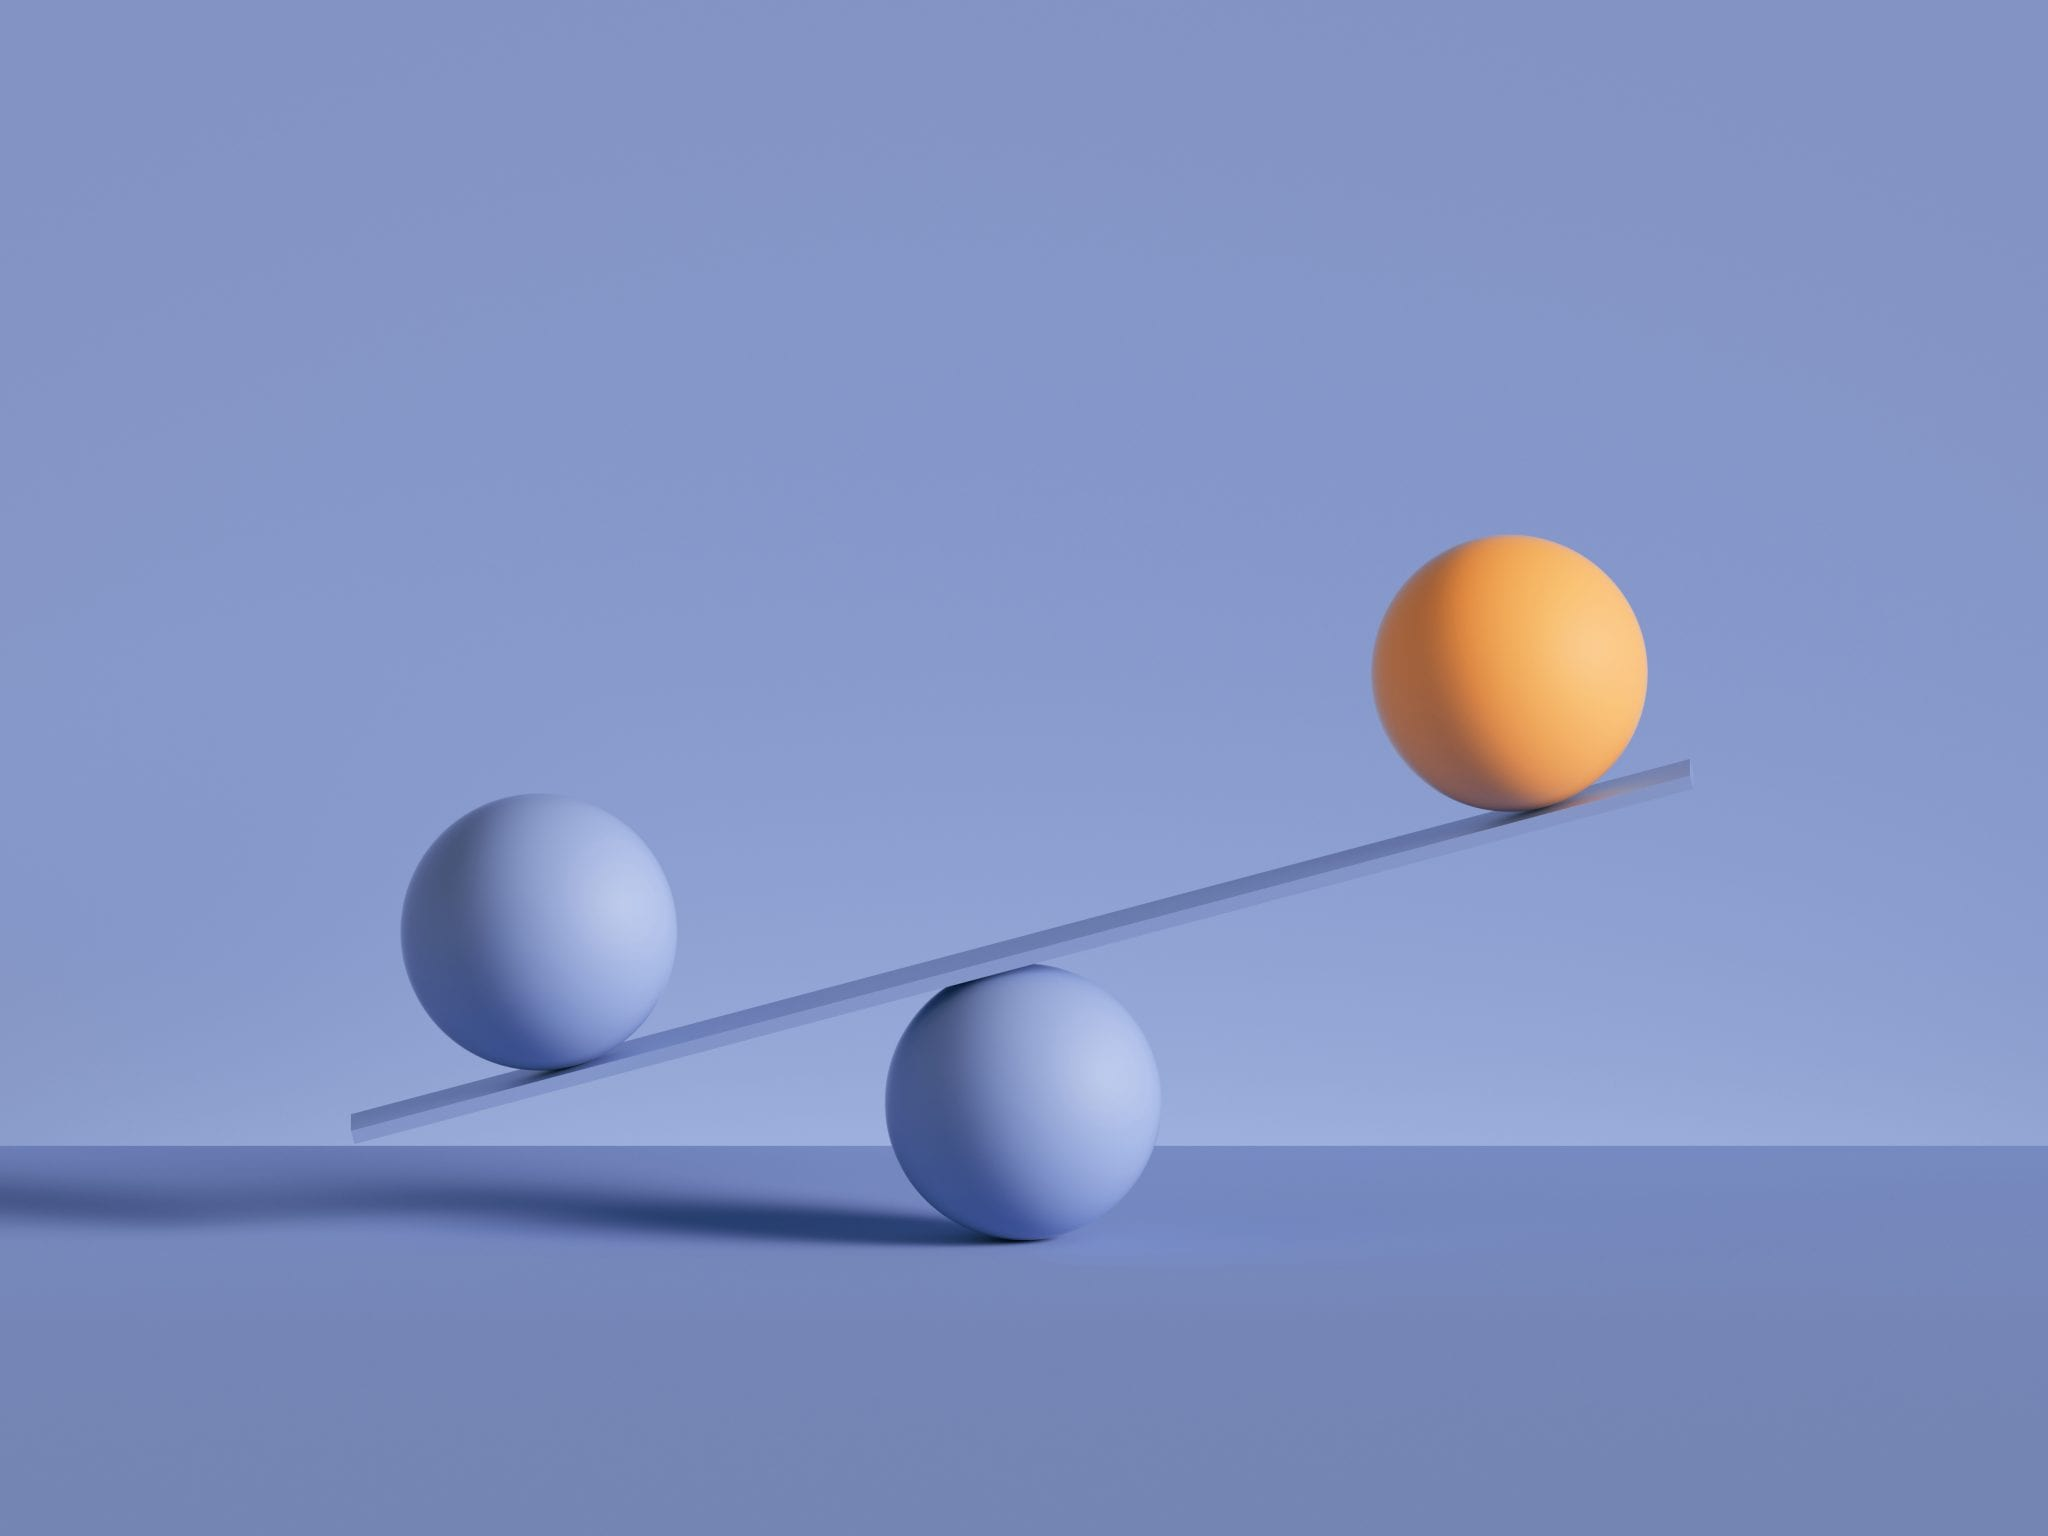 3d,Render,,Balls,Placed,On,Scales,,Isolated,On,Violet,Background.